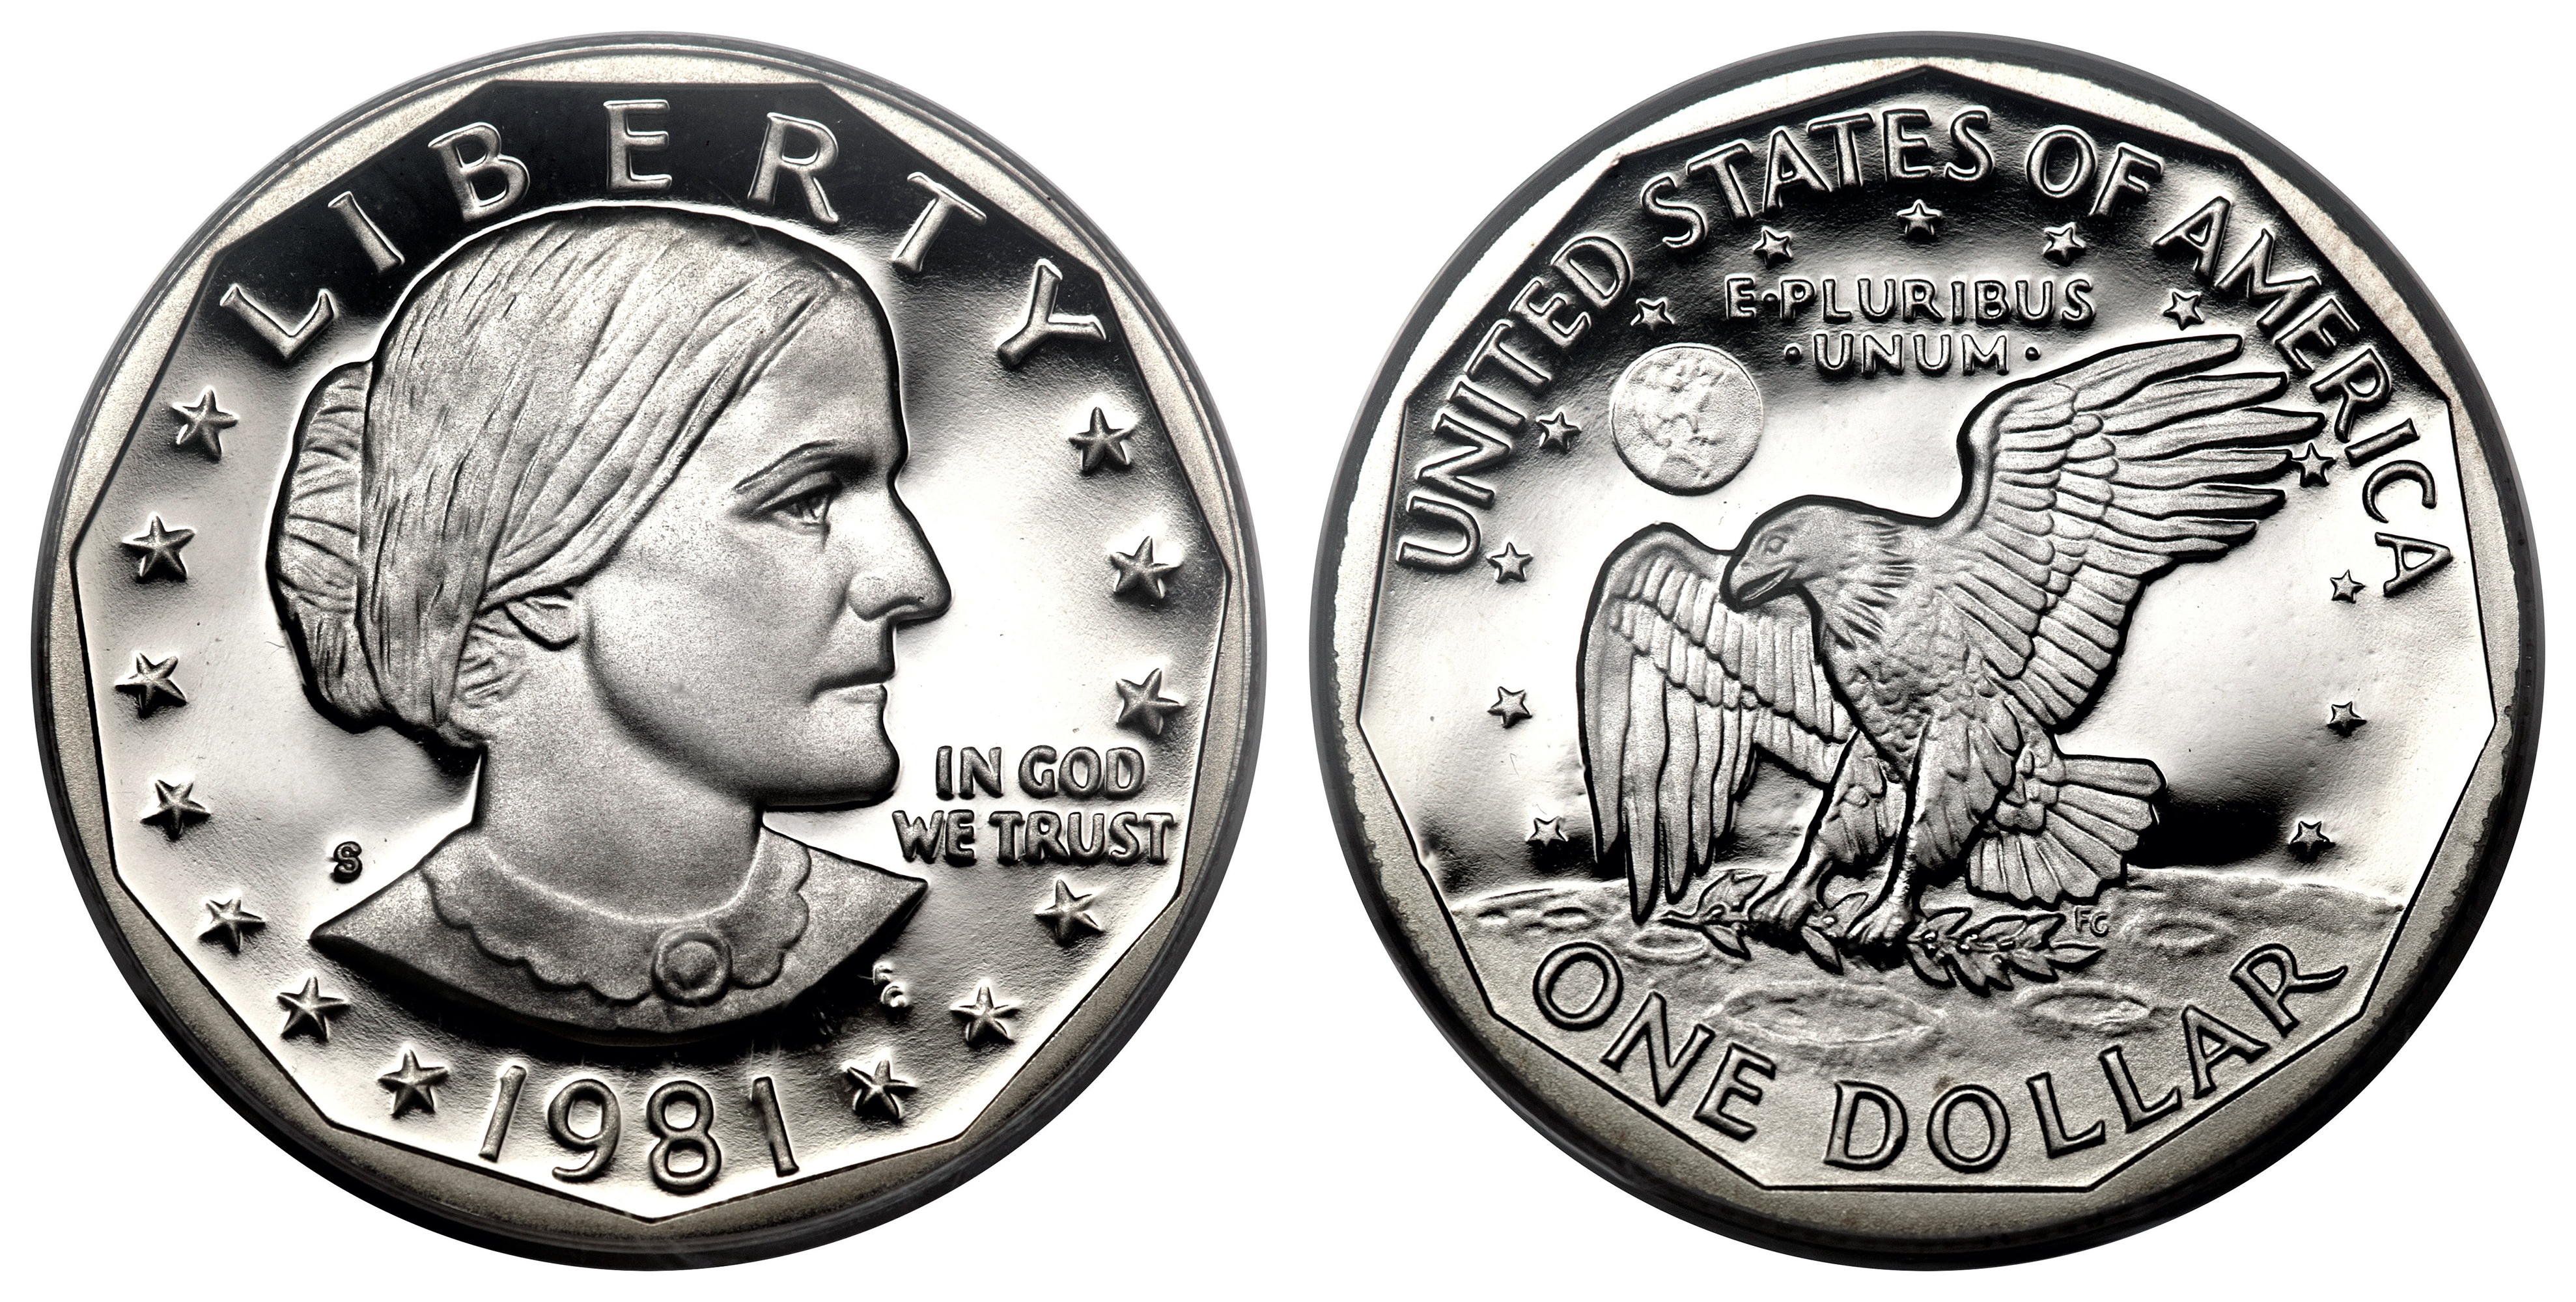 The Susan B. Anthony dollar coin was minted from 1979 to 1981, when the series was halted due to poor public reception. (Photo via Wikimedia Commons/PD)